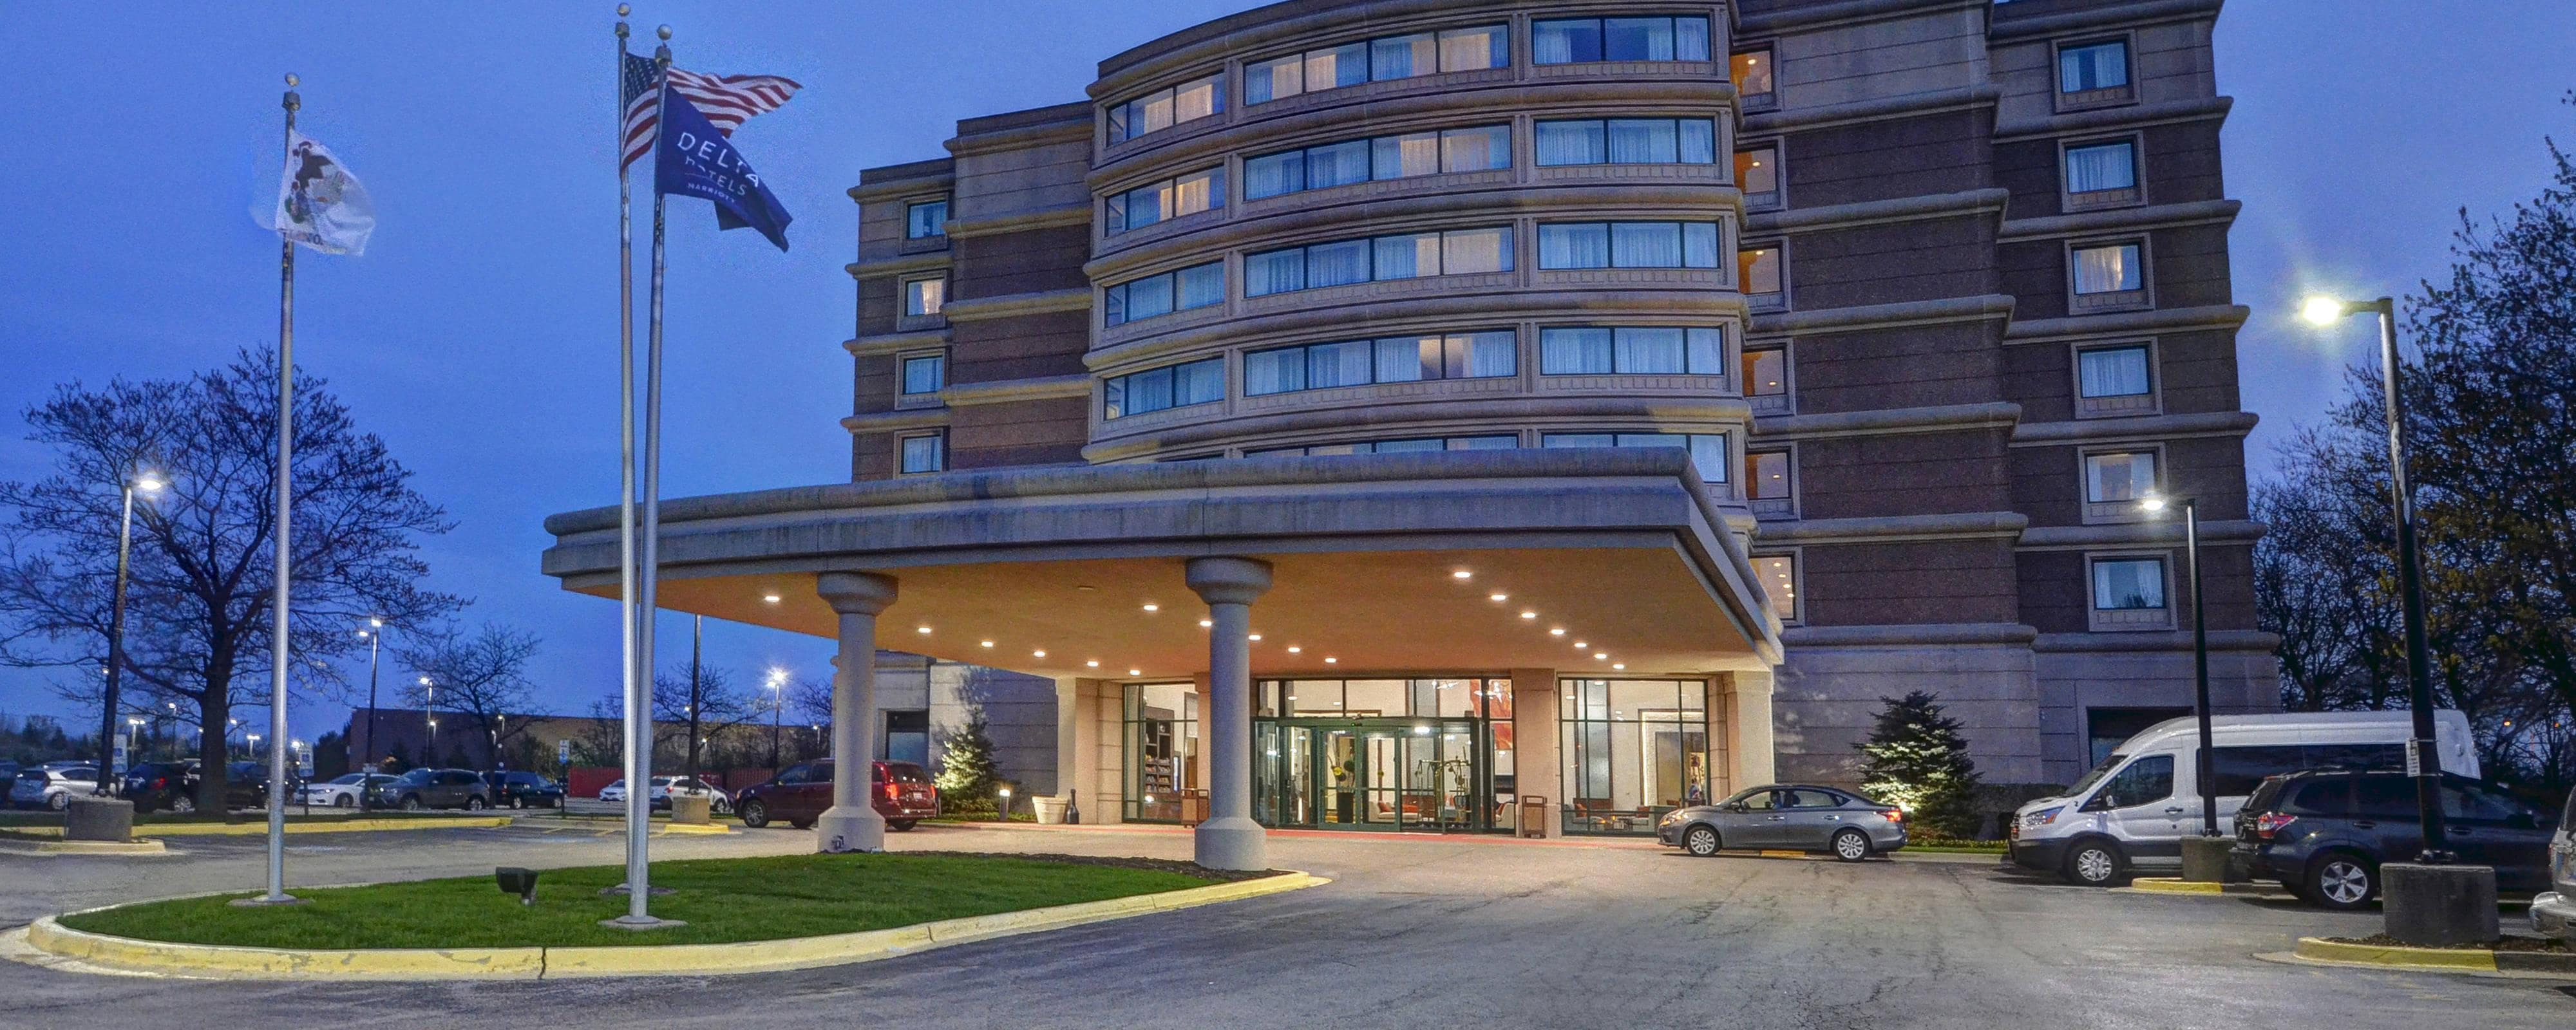 Hotels In Glenview Il Delta Hotels By Marriott Chicago North